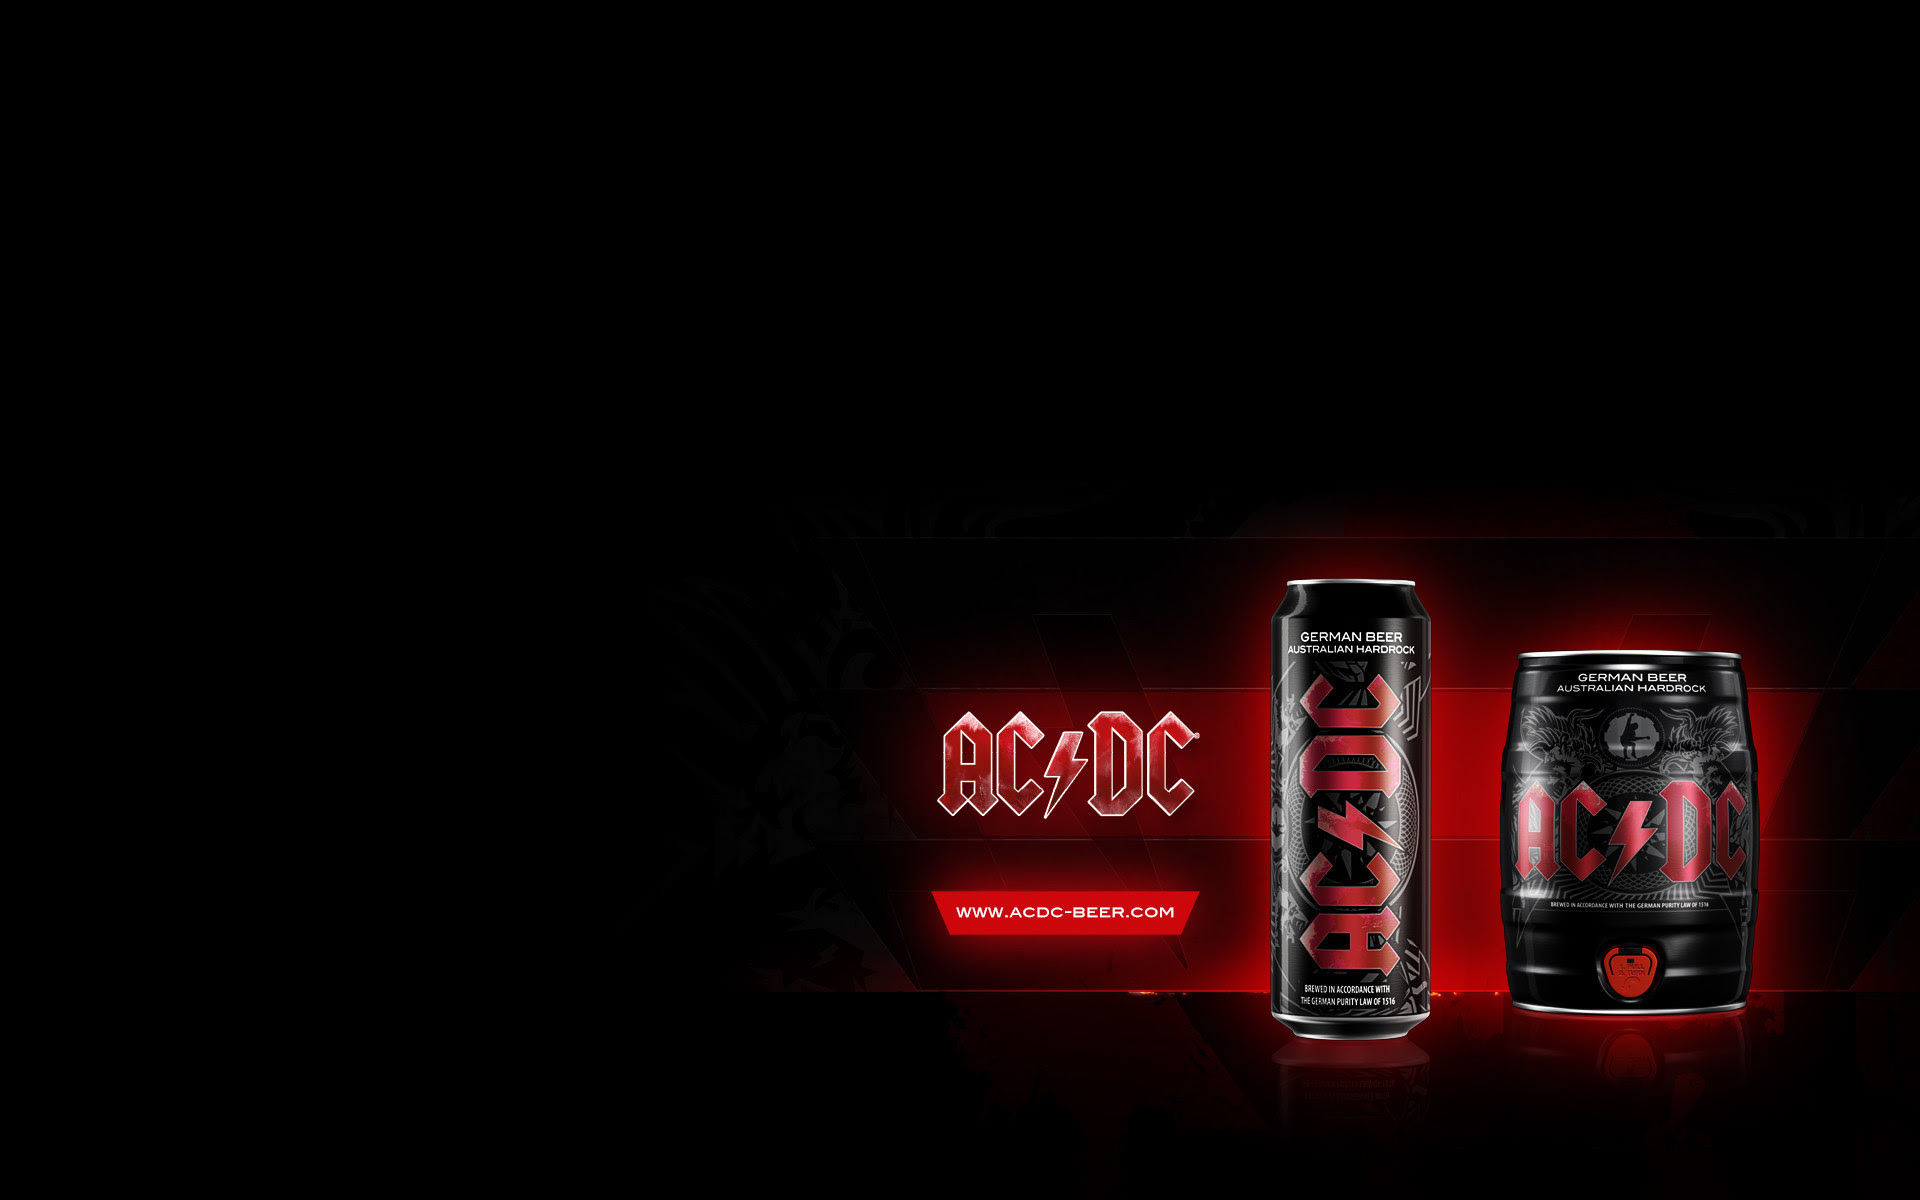 Cool Acdc Wallpaper 63 Images